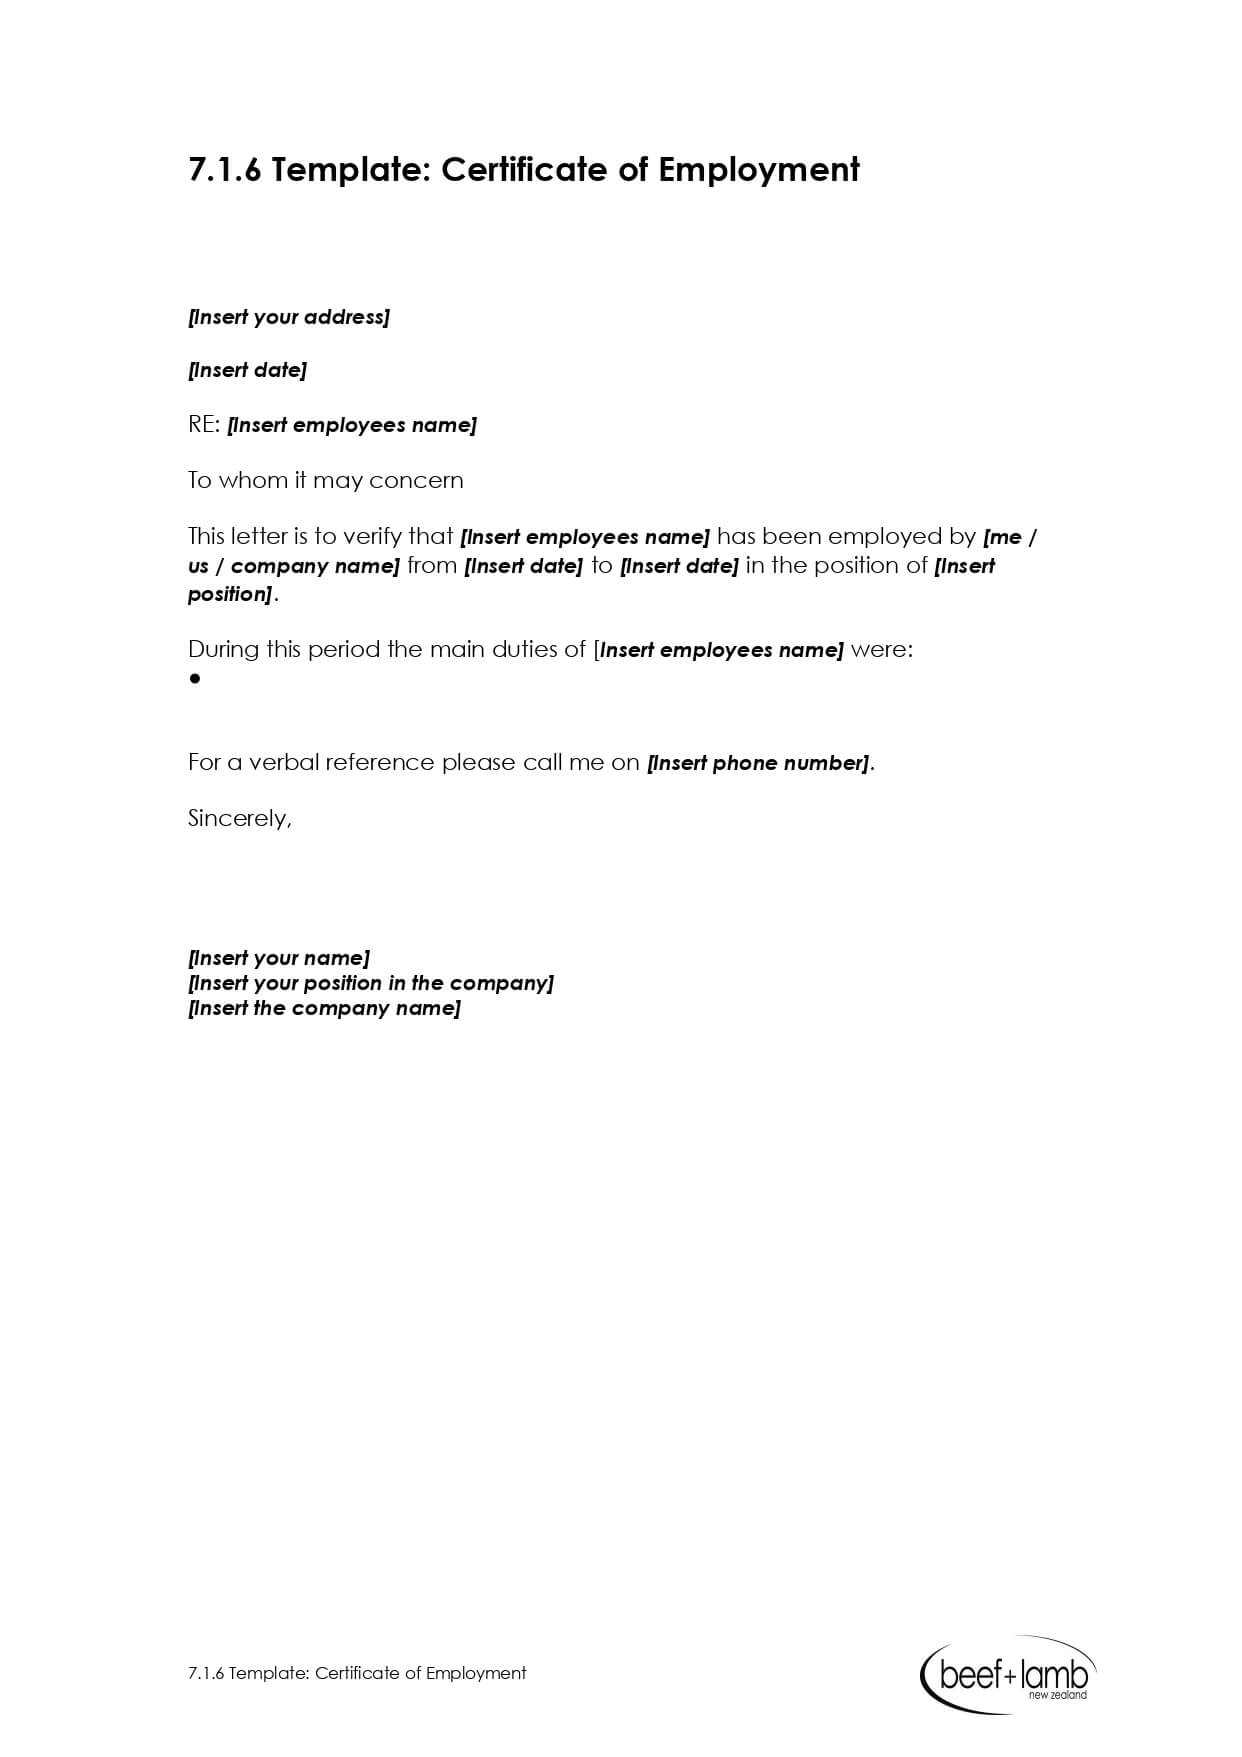 Editable Certificate Of Employment Template – Google Docs Pertaining To Sample Certificate Employment Template